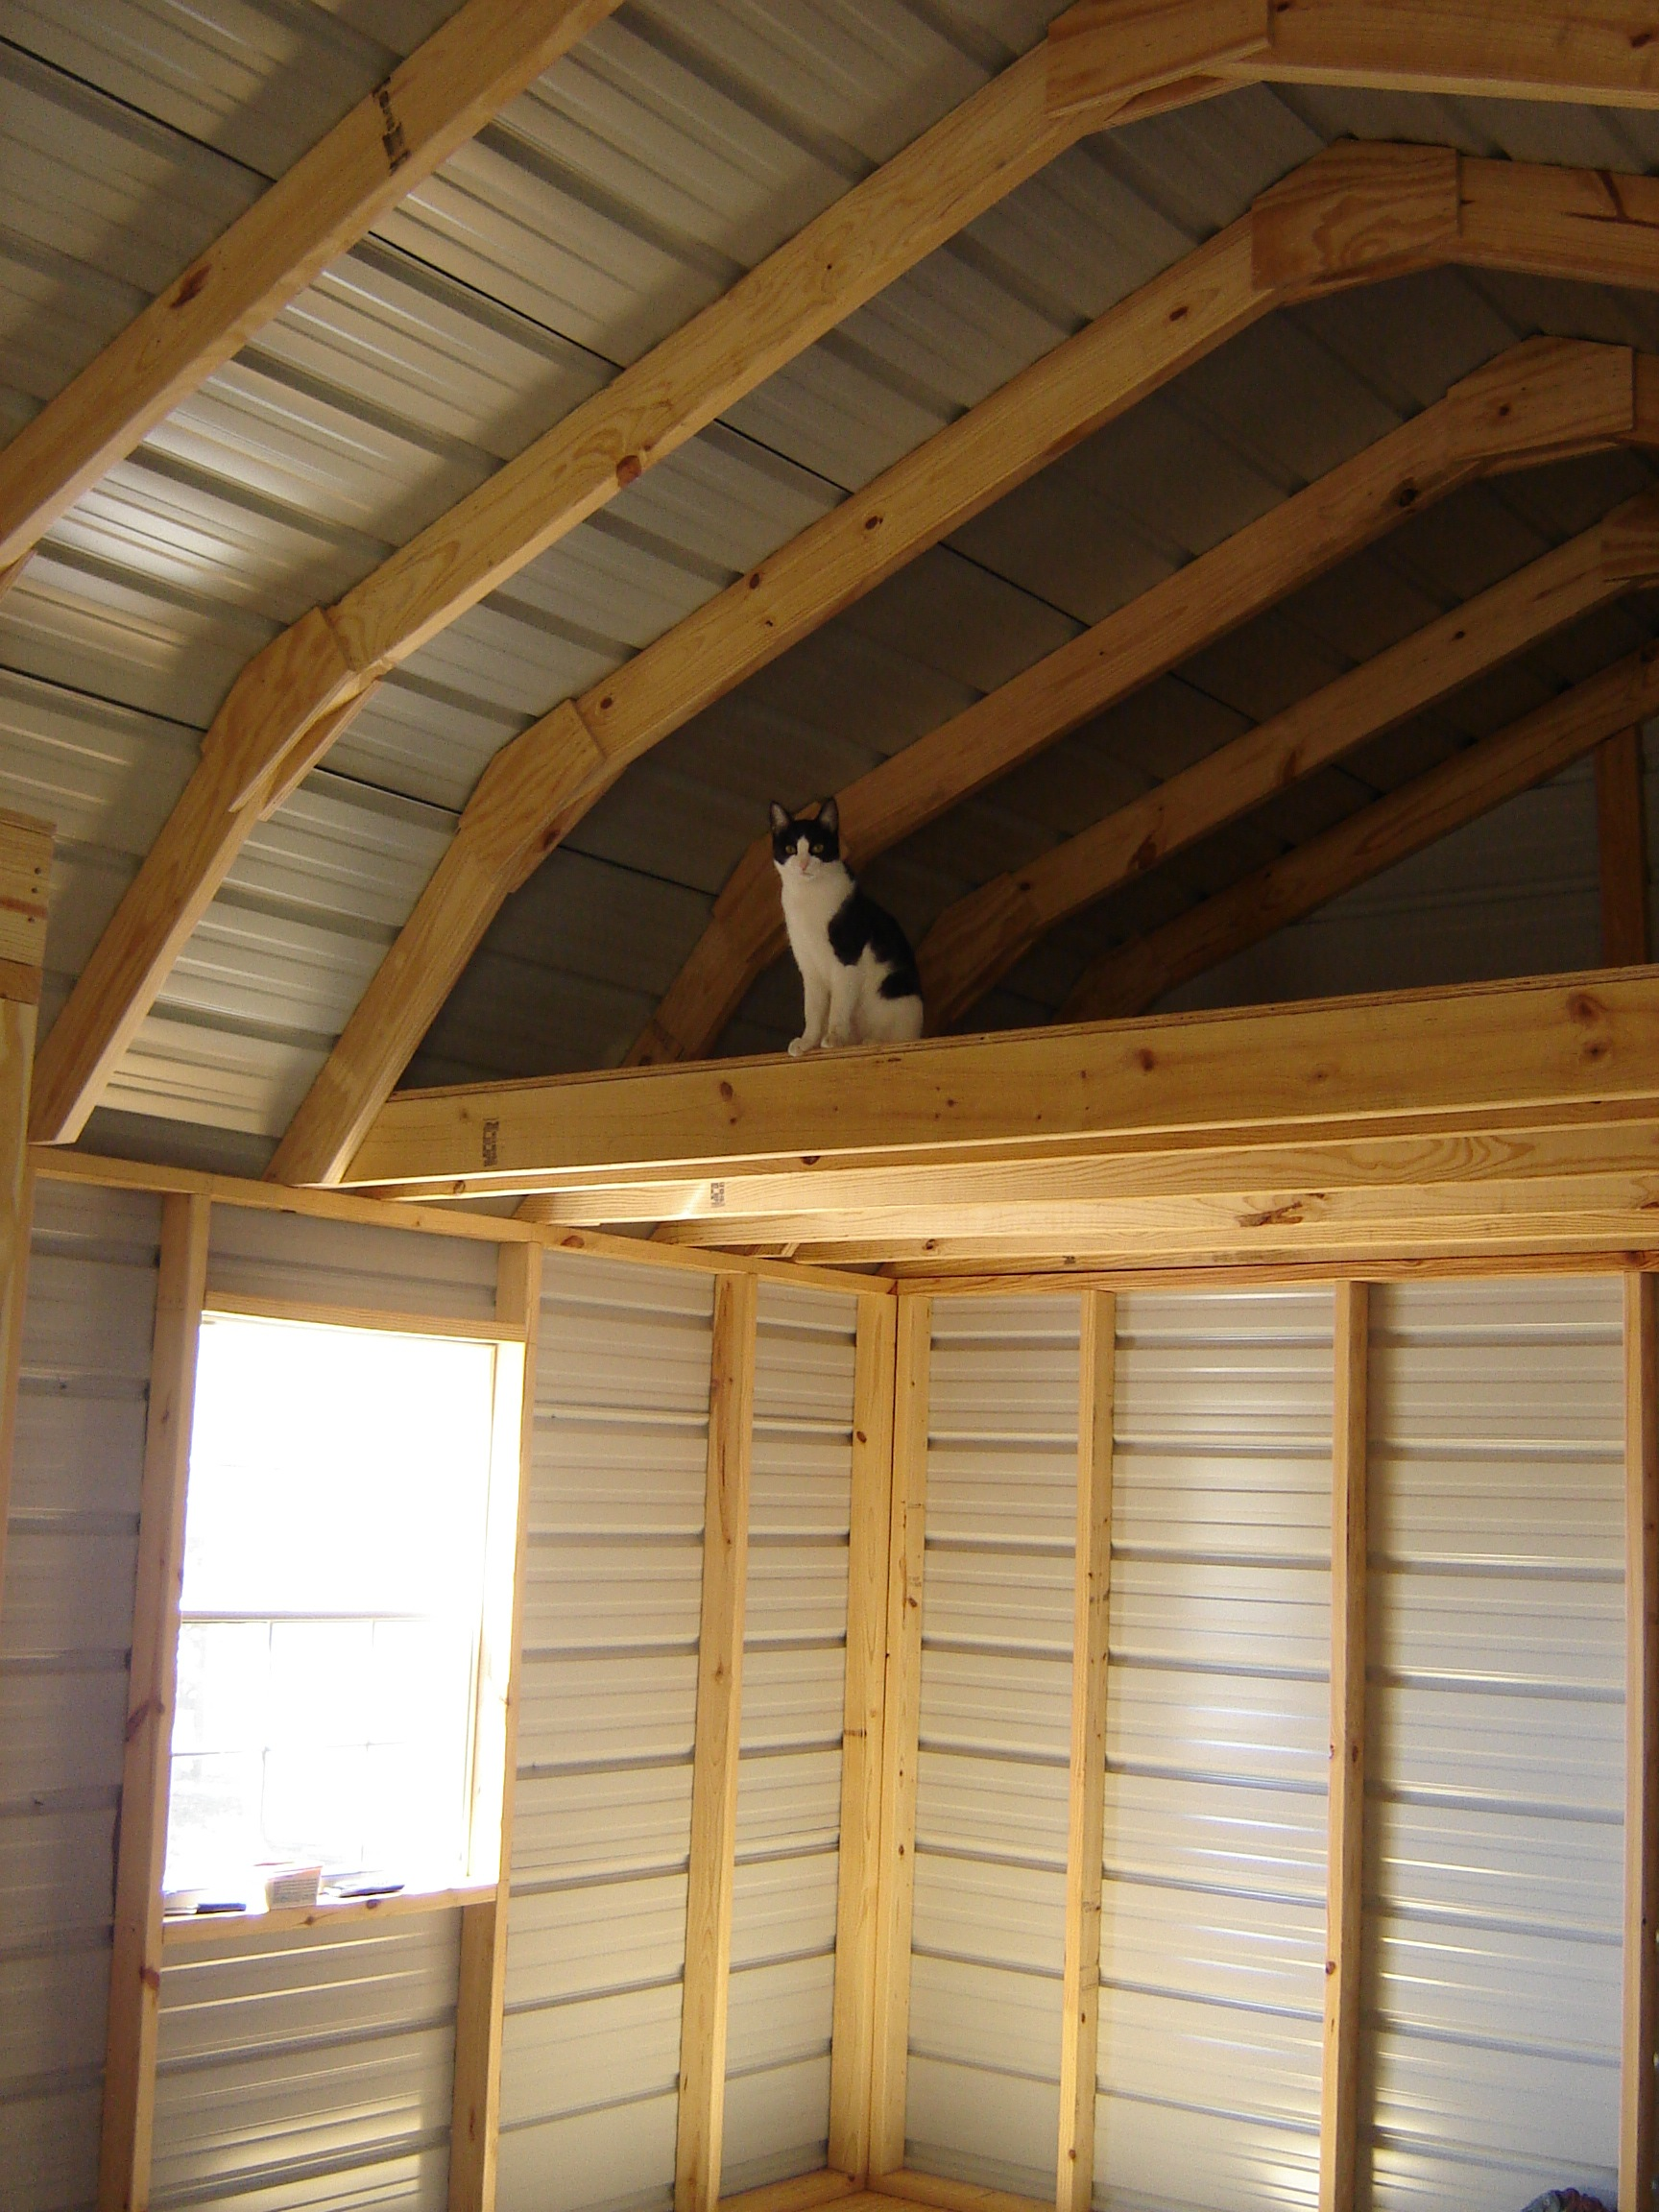 Moonshadow inspecting the loft